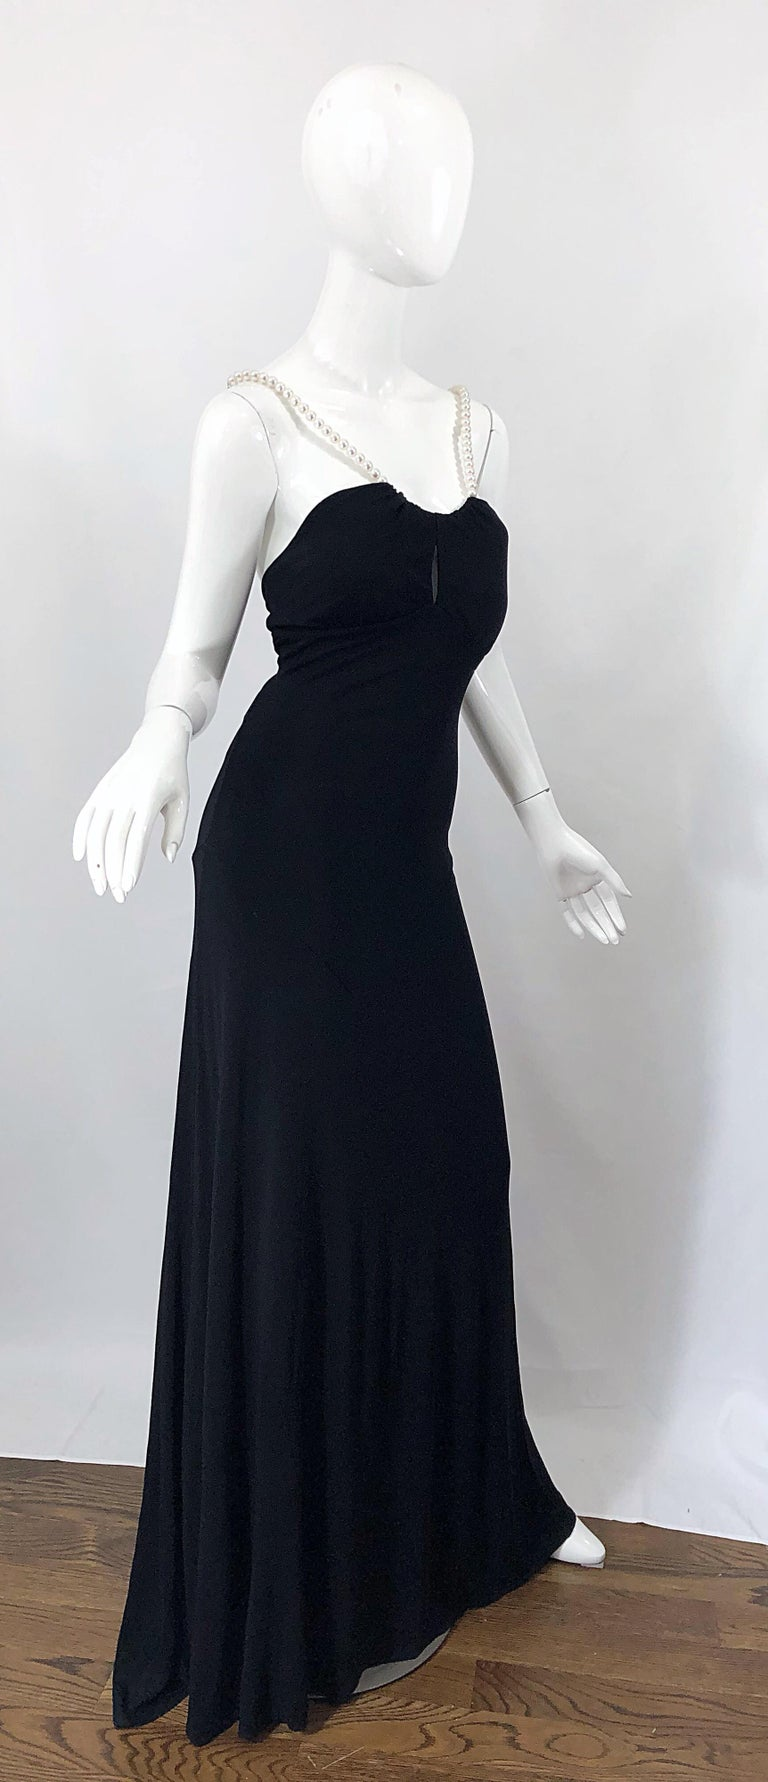 Michael Kors Collection Pearl Open Back Size 4 / 6 Black Grecian Gown Dress For Sale 9